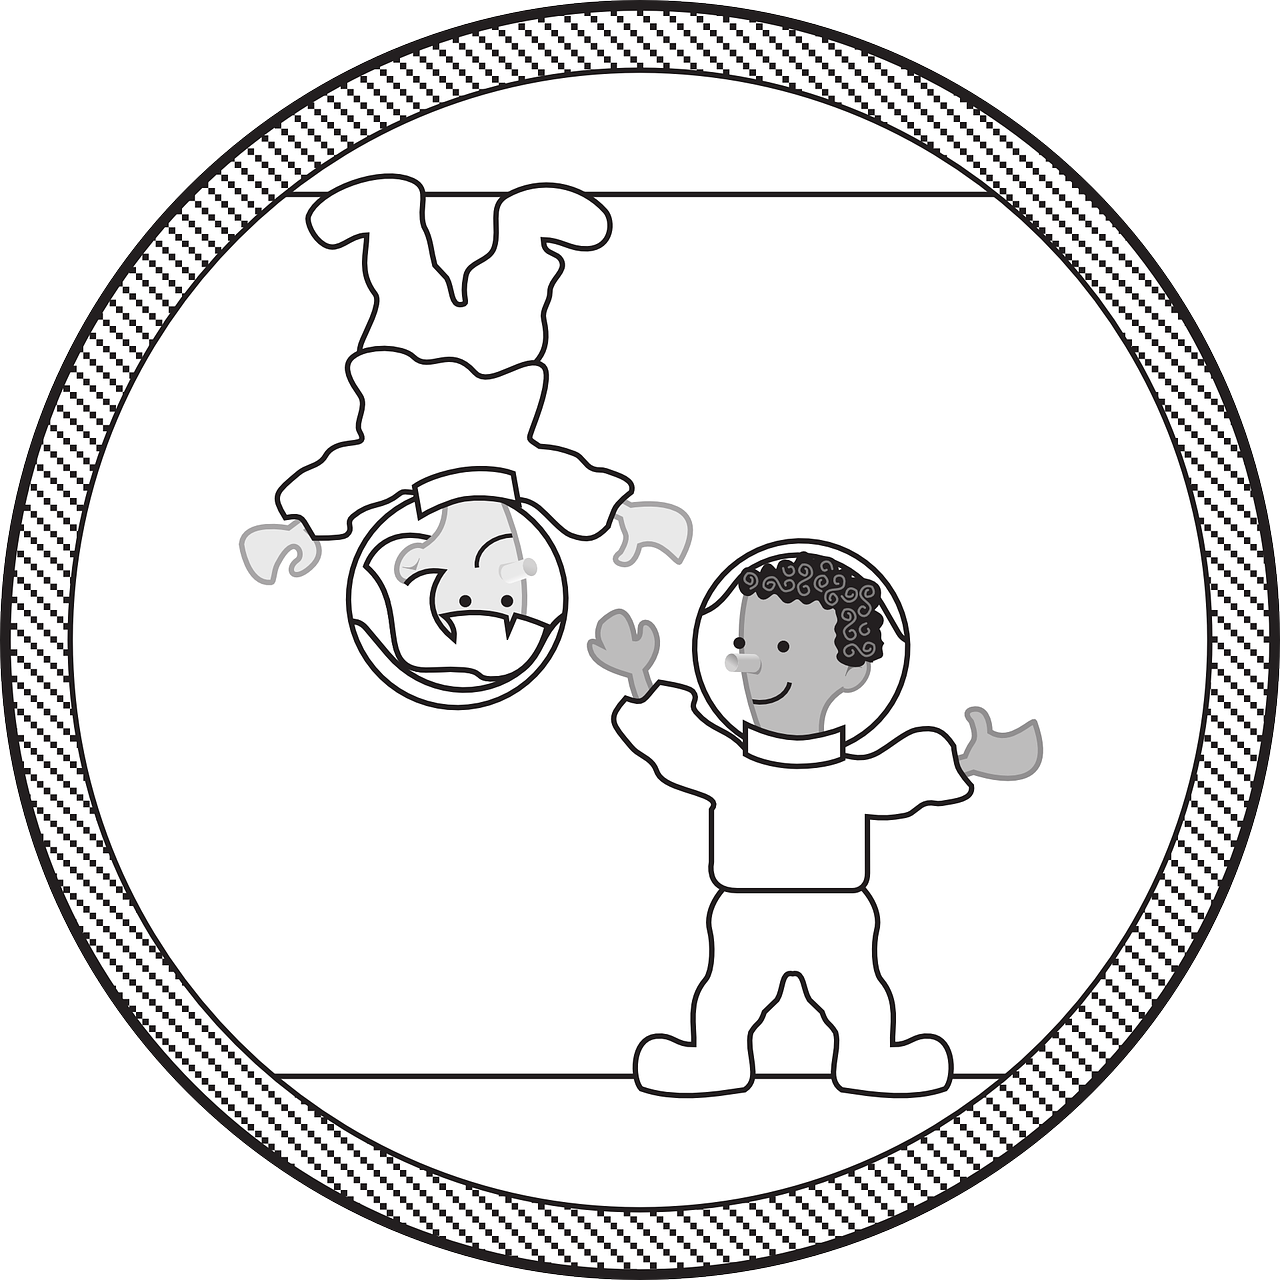 Astronaut gravity clipart black and white library Astronaut,zero gravity,gravity-less,space-walk,free vector graphics ... black and white library